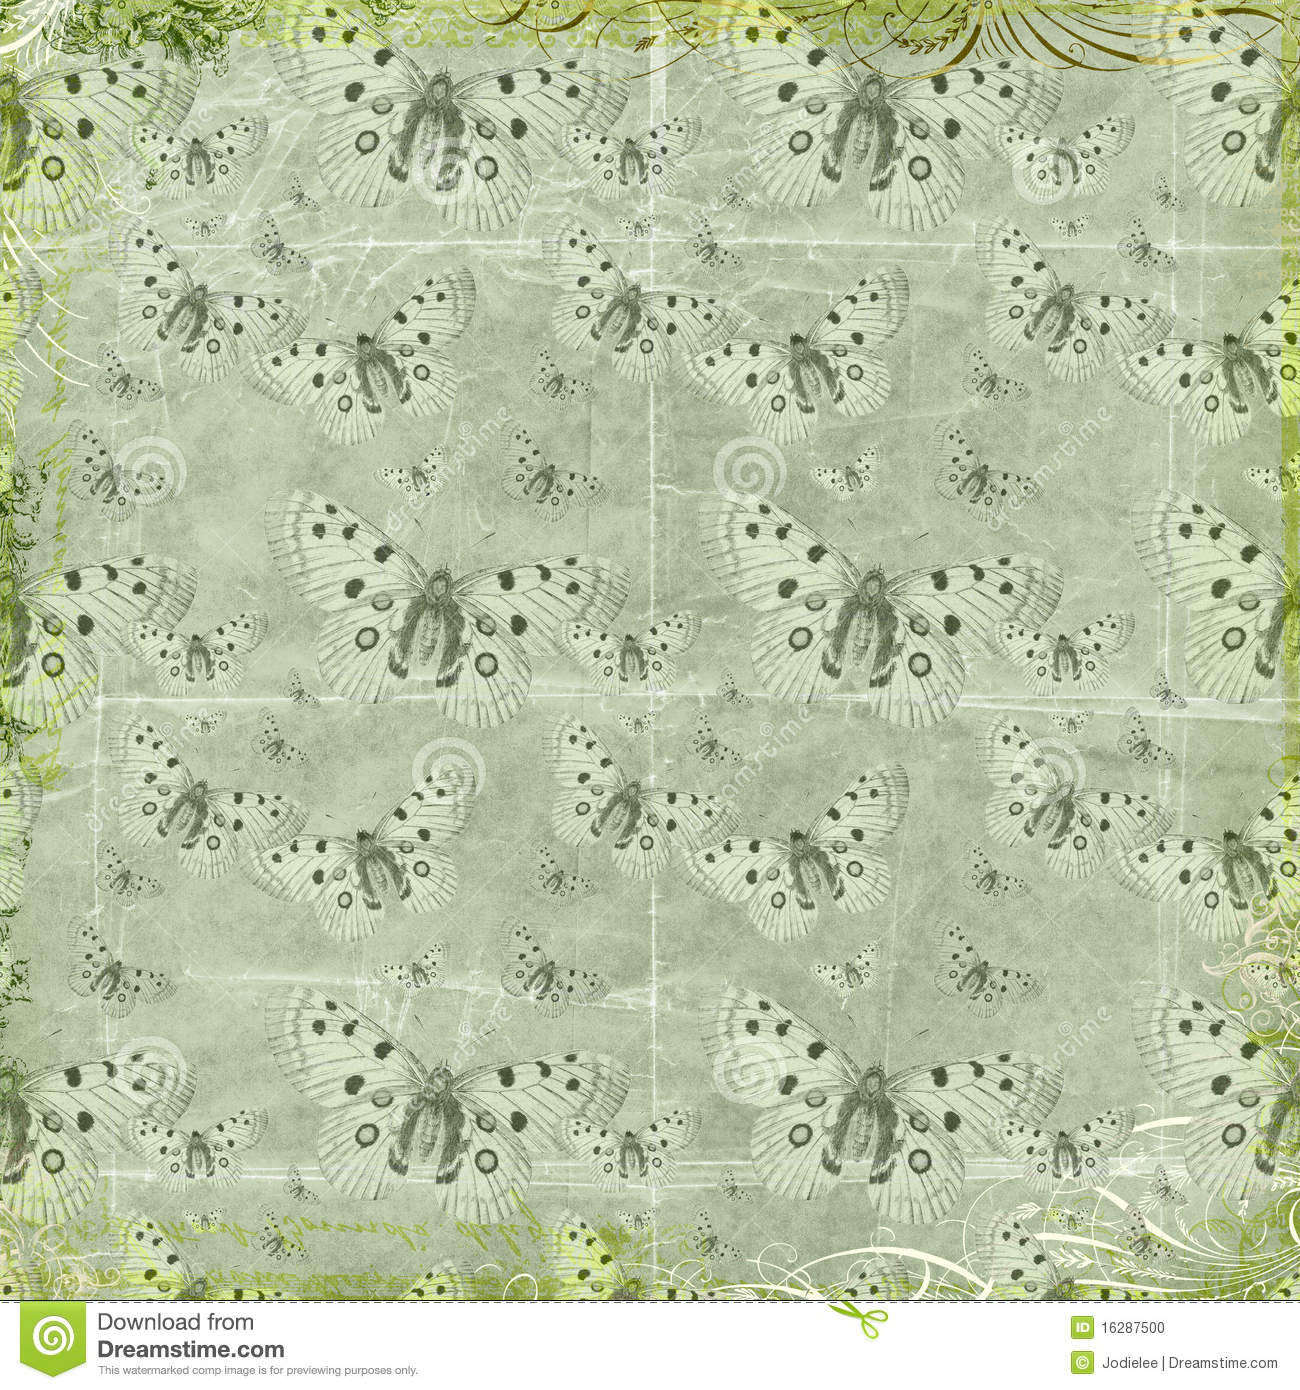 Green butterflies repeat pattern background